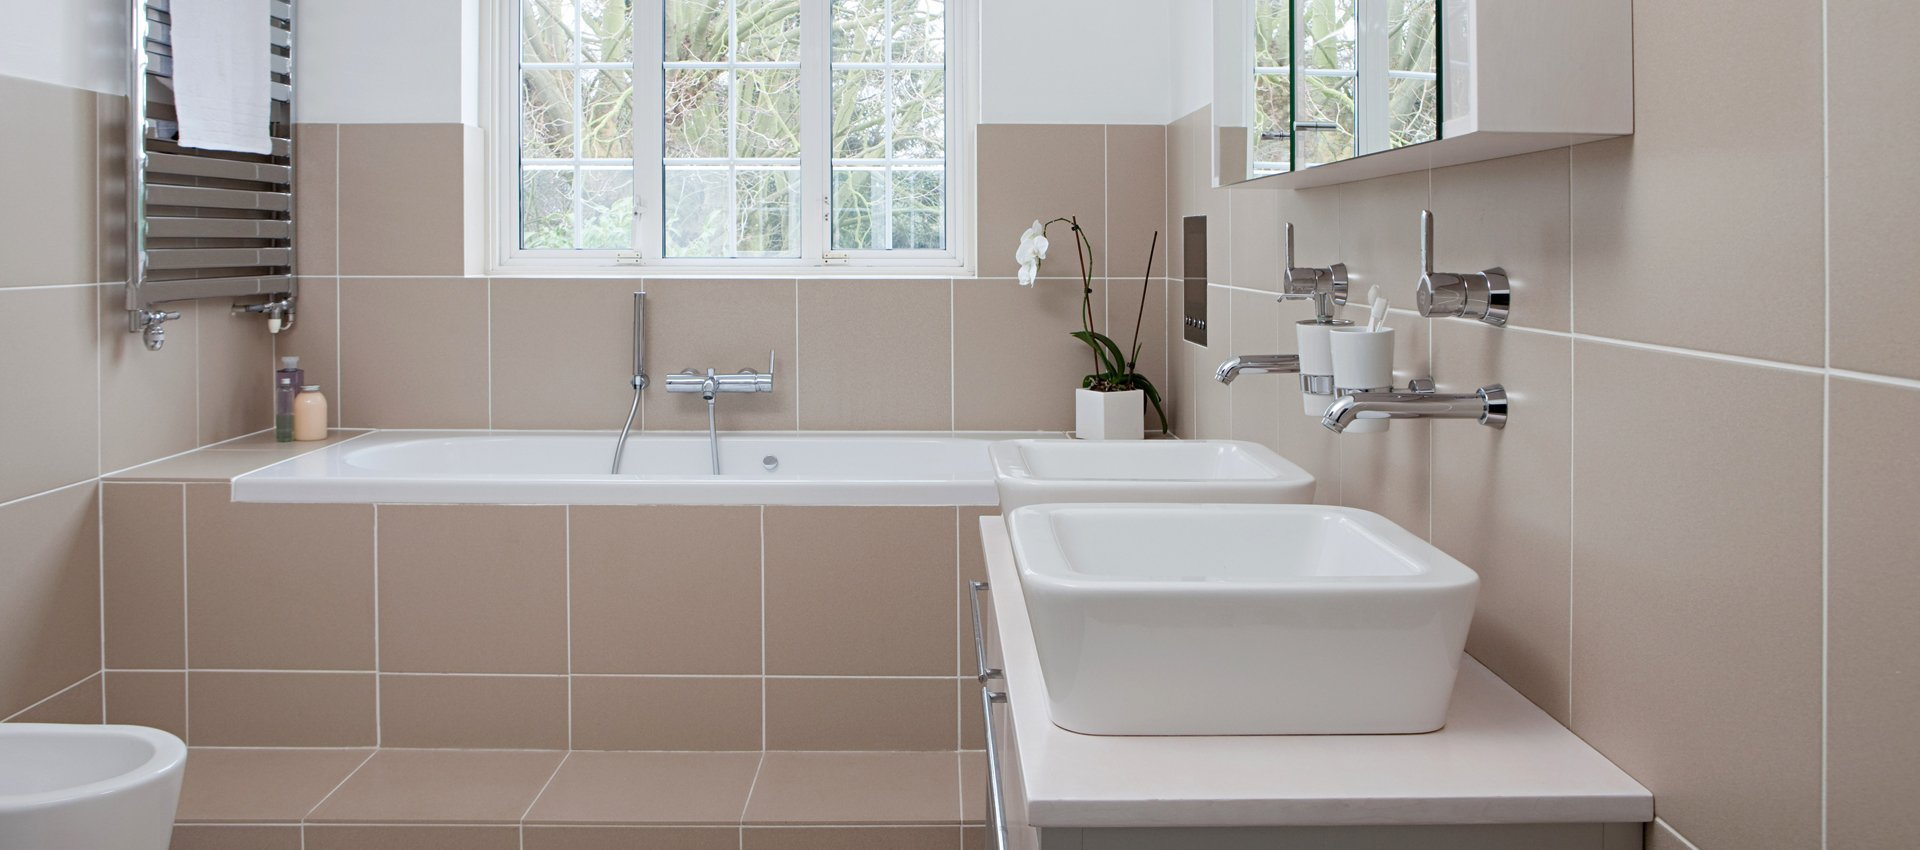 Bathroom Fixtures And Fittings In Northamptonshire And The UK